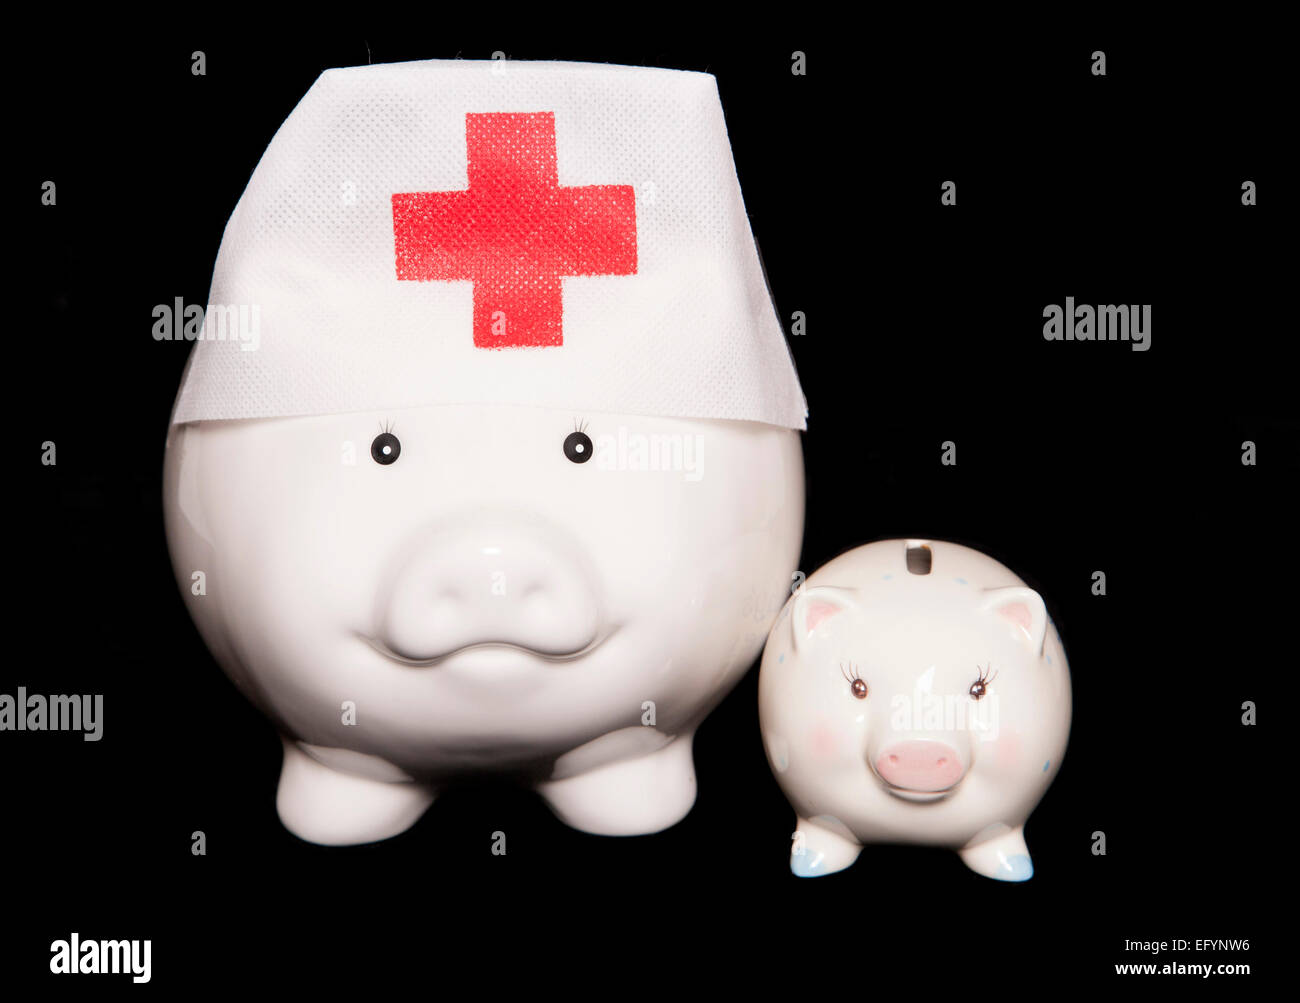 spending money on health care for next generation cutout - Stock Image